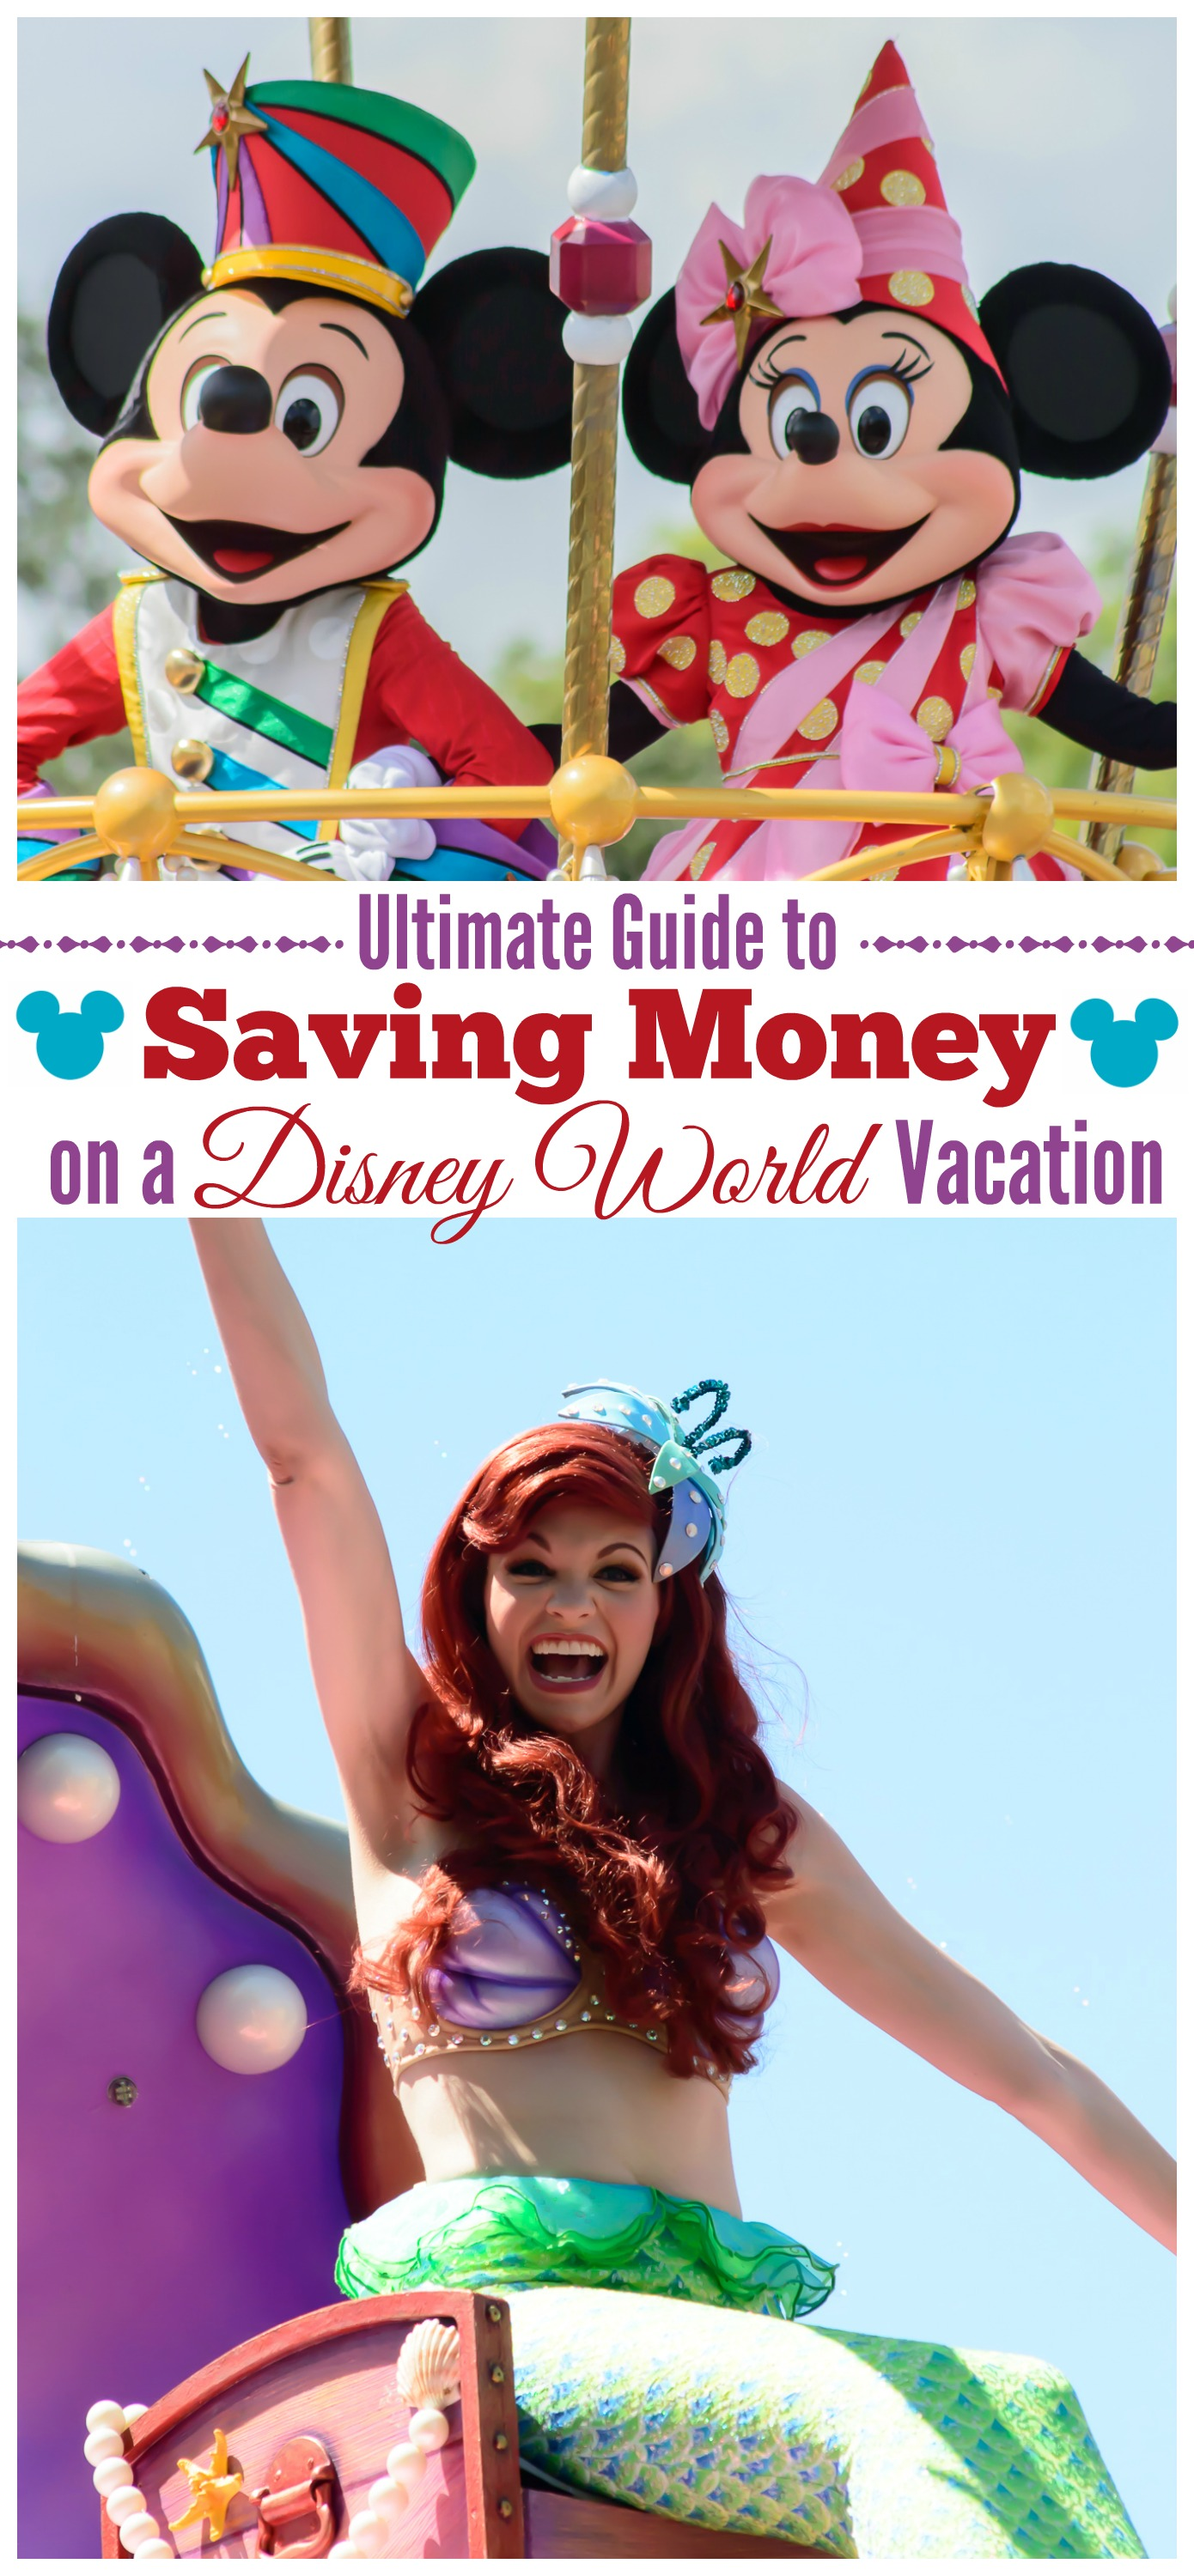 A trip to Disney world doesn't have to break the bank, in fact, it can be downright affordable if you follow these simple tips for saving money on your Disney World vacation!